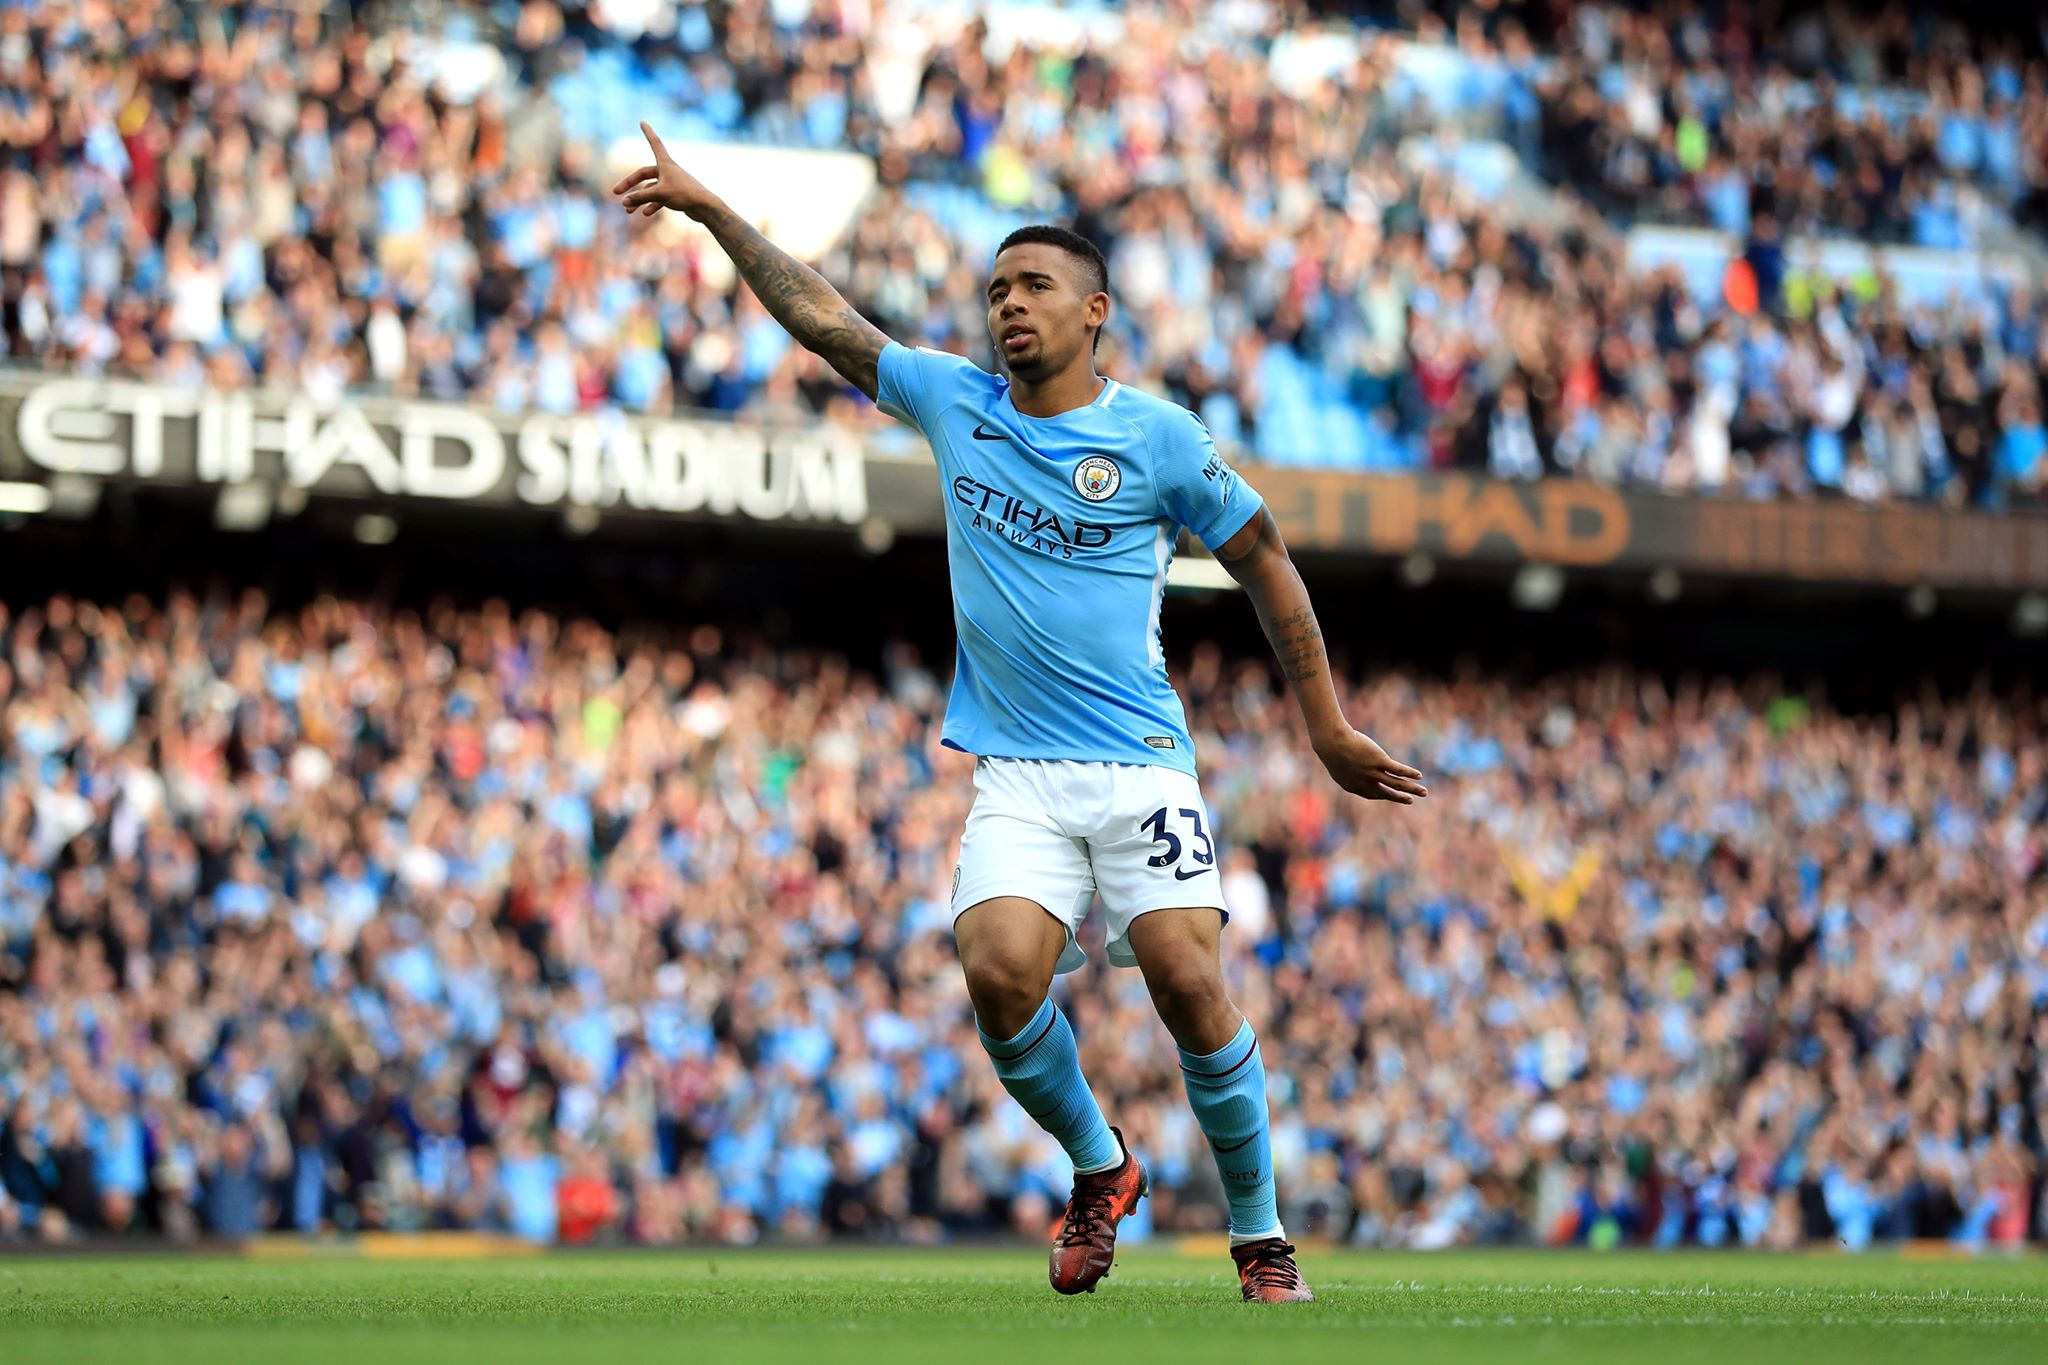 Man City star Gabriel Jesus makes ominous statement about his goalscoring hunger